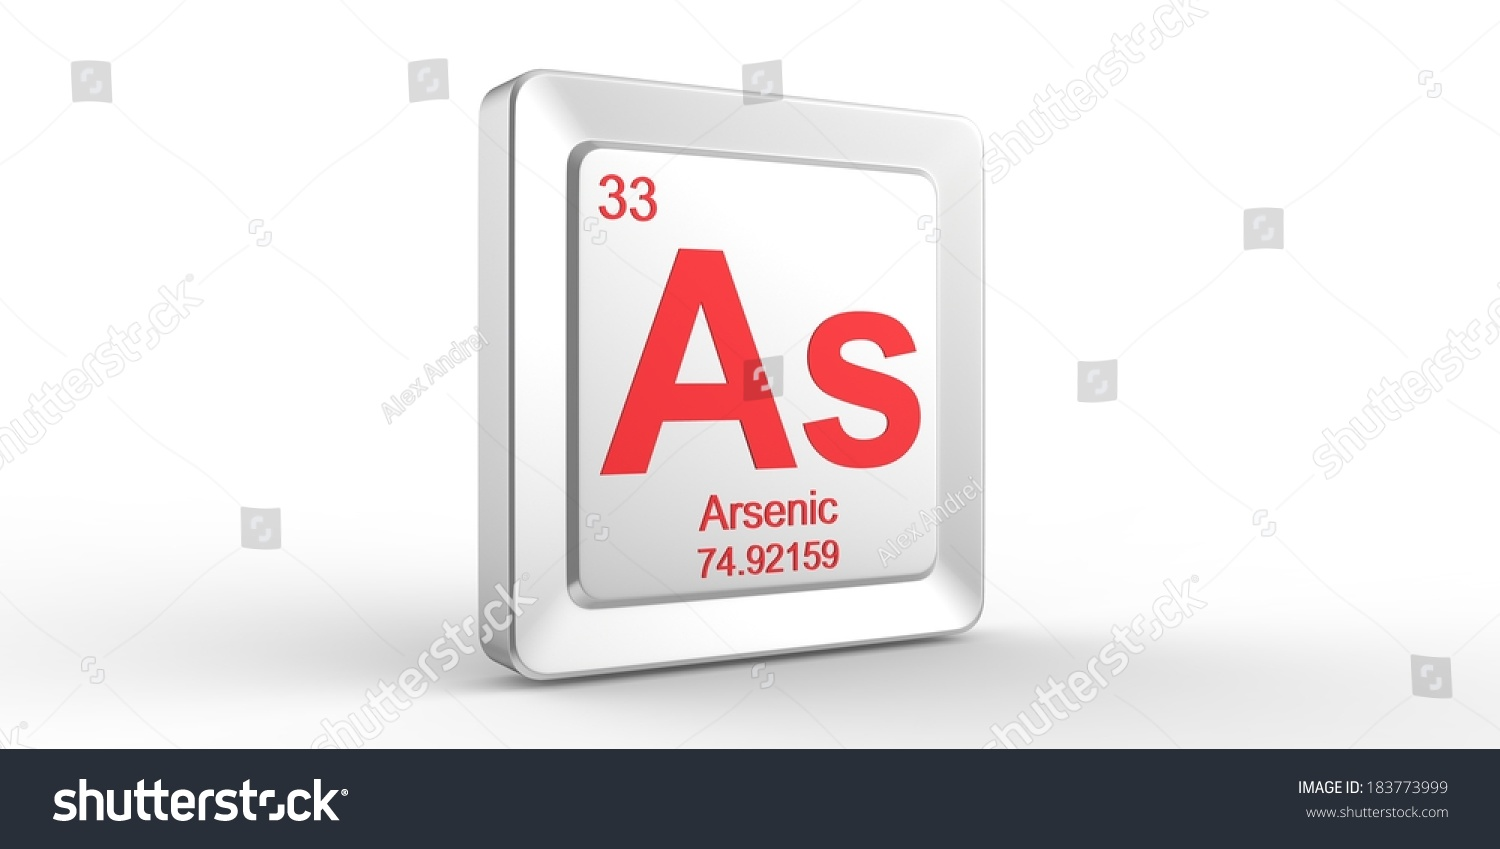 As Symbol 33 Material For Arsenic Chemical Element Of The Periodic